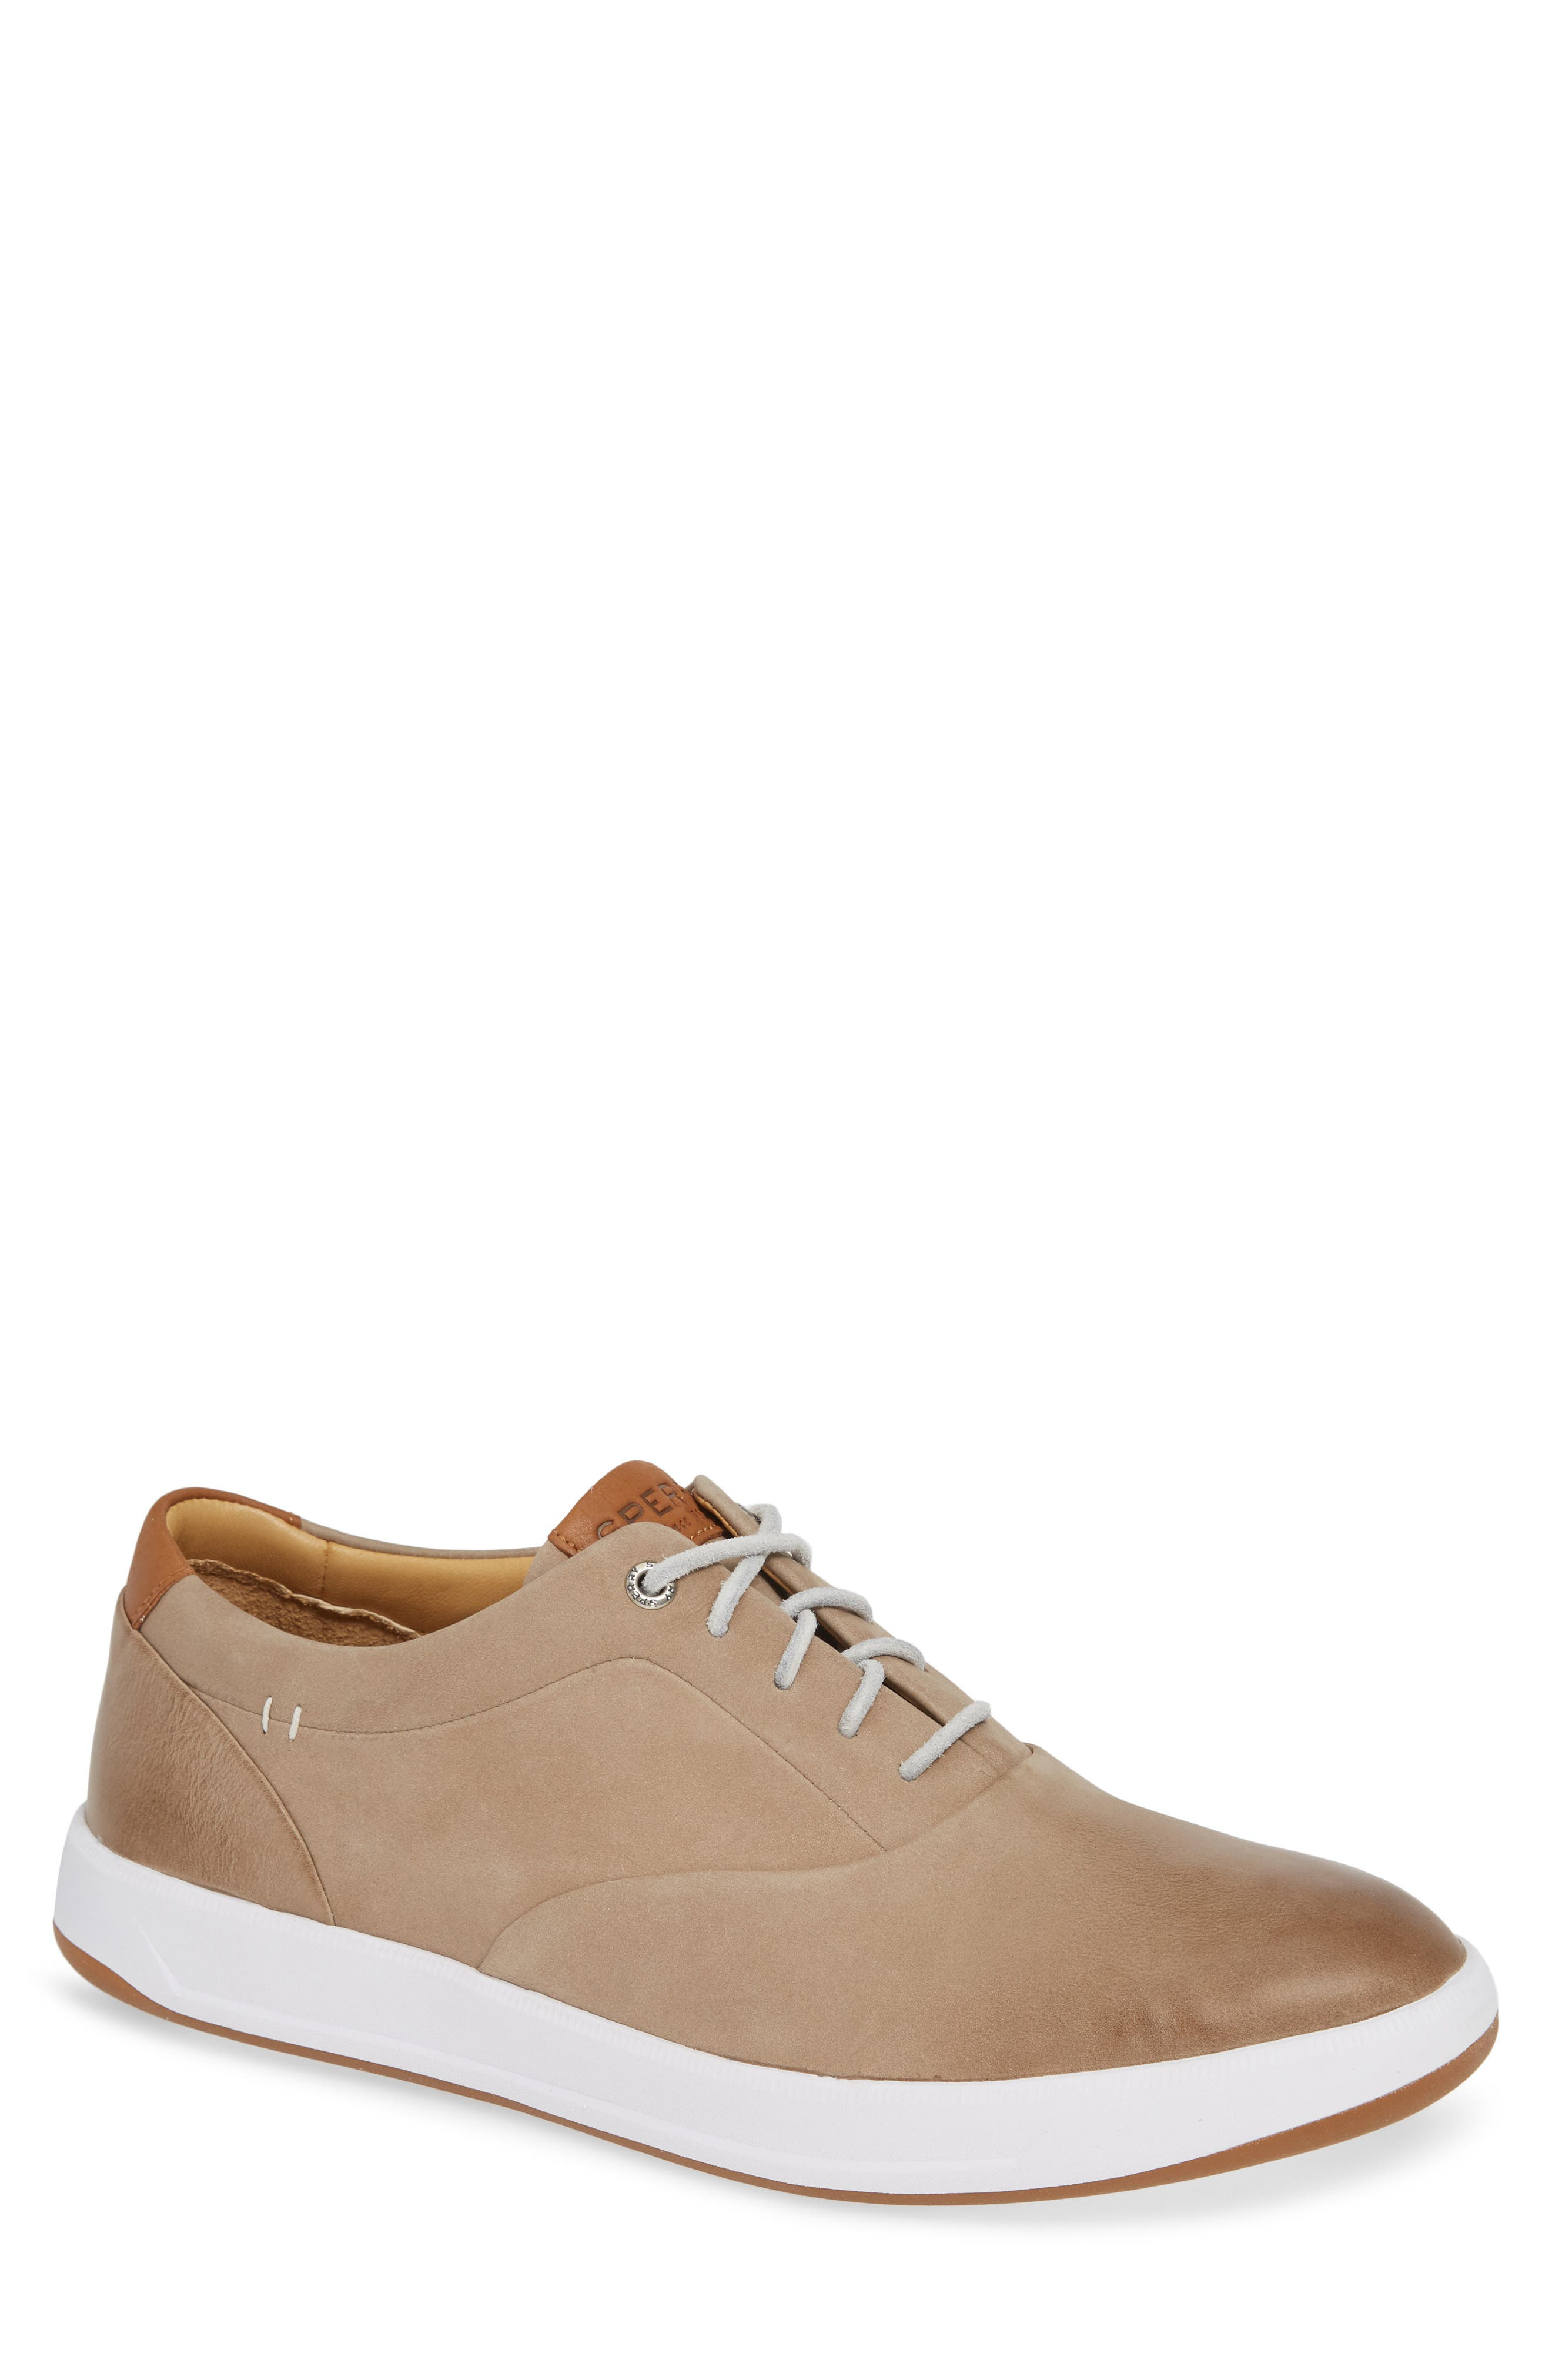 SPERRY, Gold Cup Richfield CVO Sneaker, Main thumbnail 1, color, DOVE